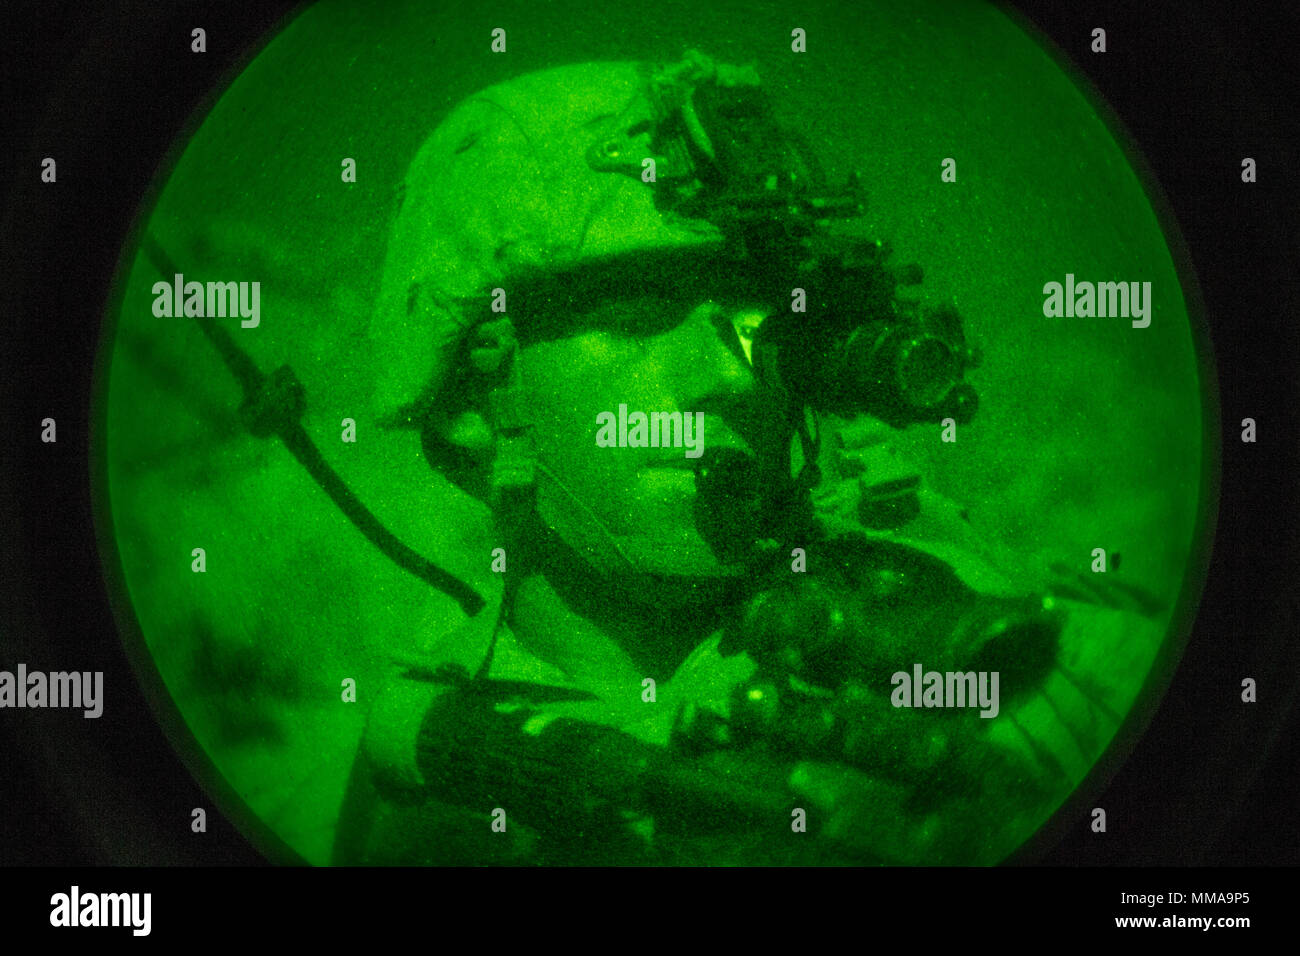 A U.S. Marine with Regimental Surveillance & Target Acquisition Company (RSTAC), 1st Marine Division, looks through a PVS-14 night vision scope during a night insert at Fort Irwin, Calif., Oct. 1, 2017. RSTAC is an experimental company designed to build proficiency in scout sniper operations for service level exercises. (U.S. Marine Corps photo by Lance Cpl. Alexa M. Hernandez) Stock Photo